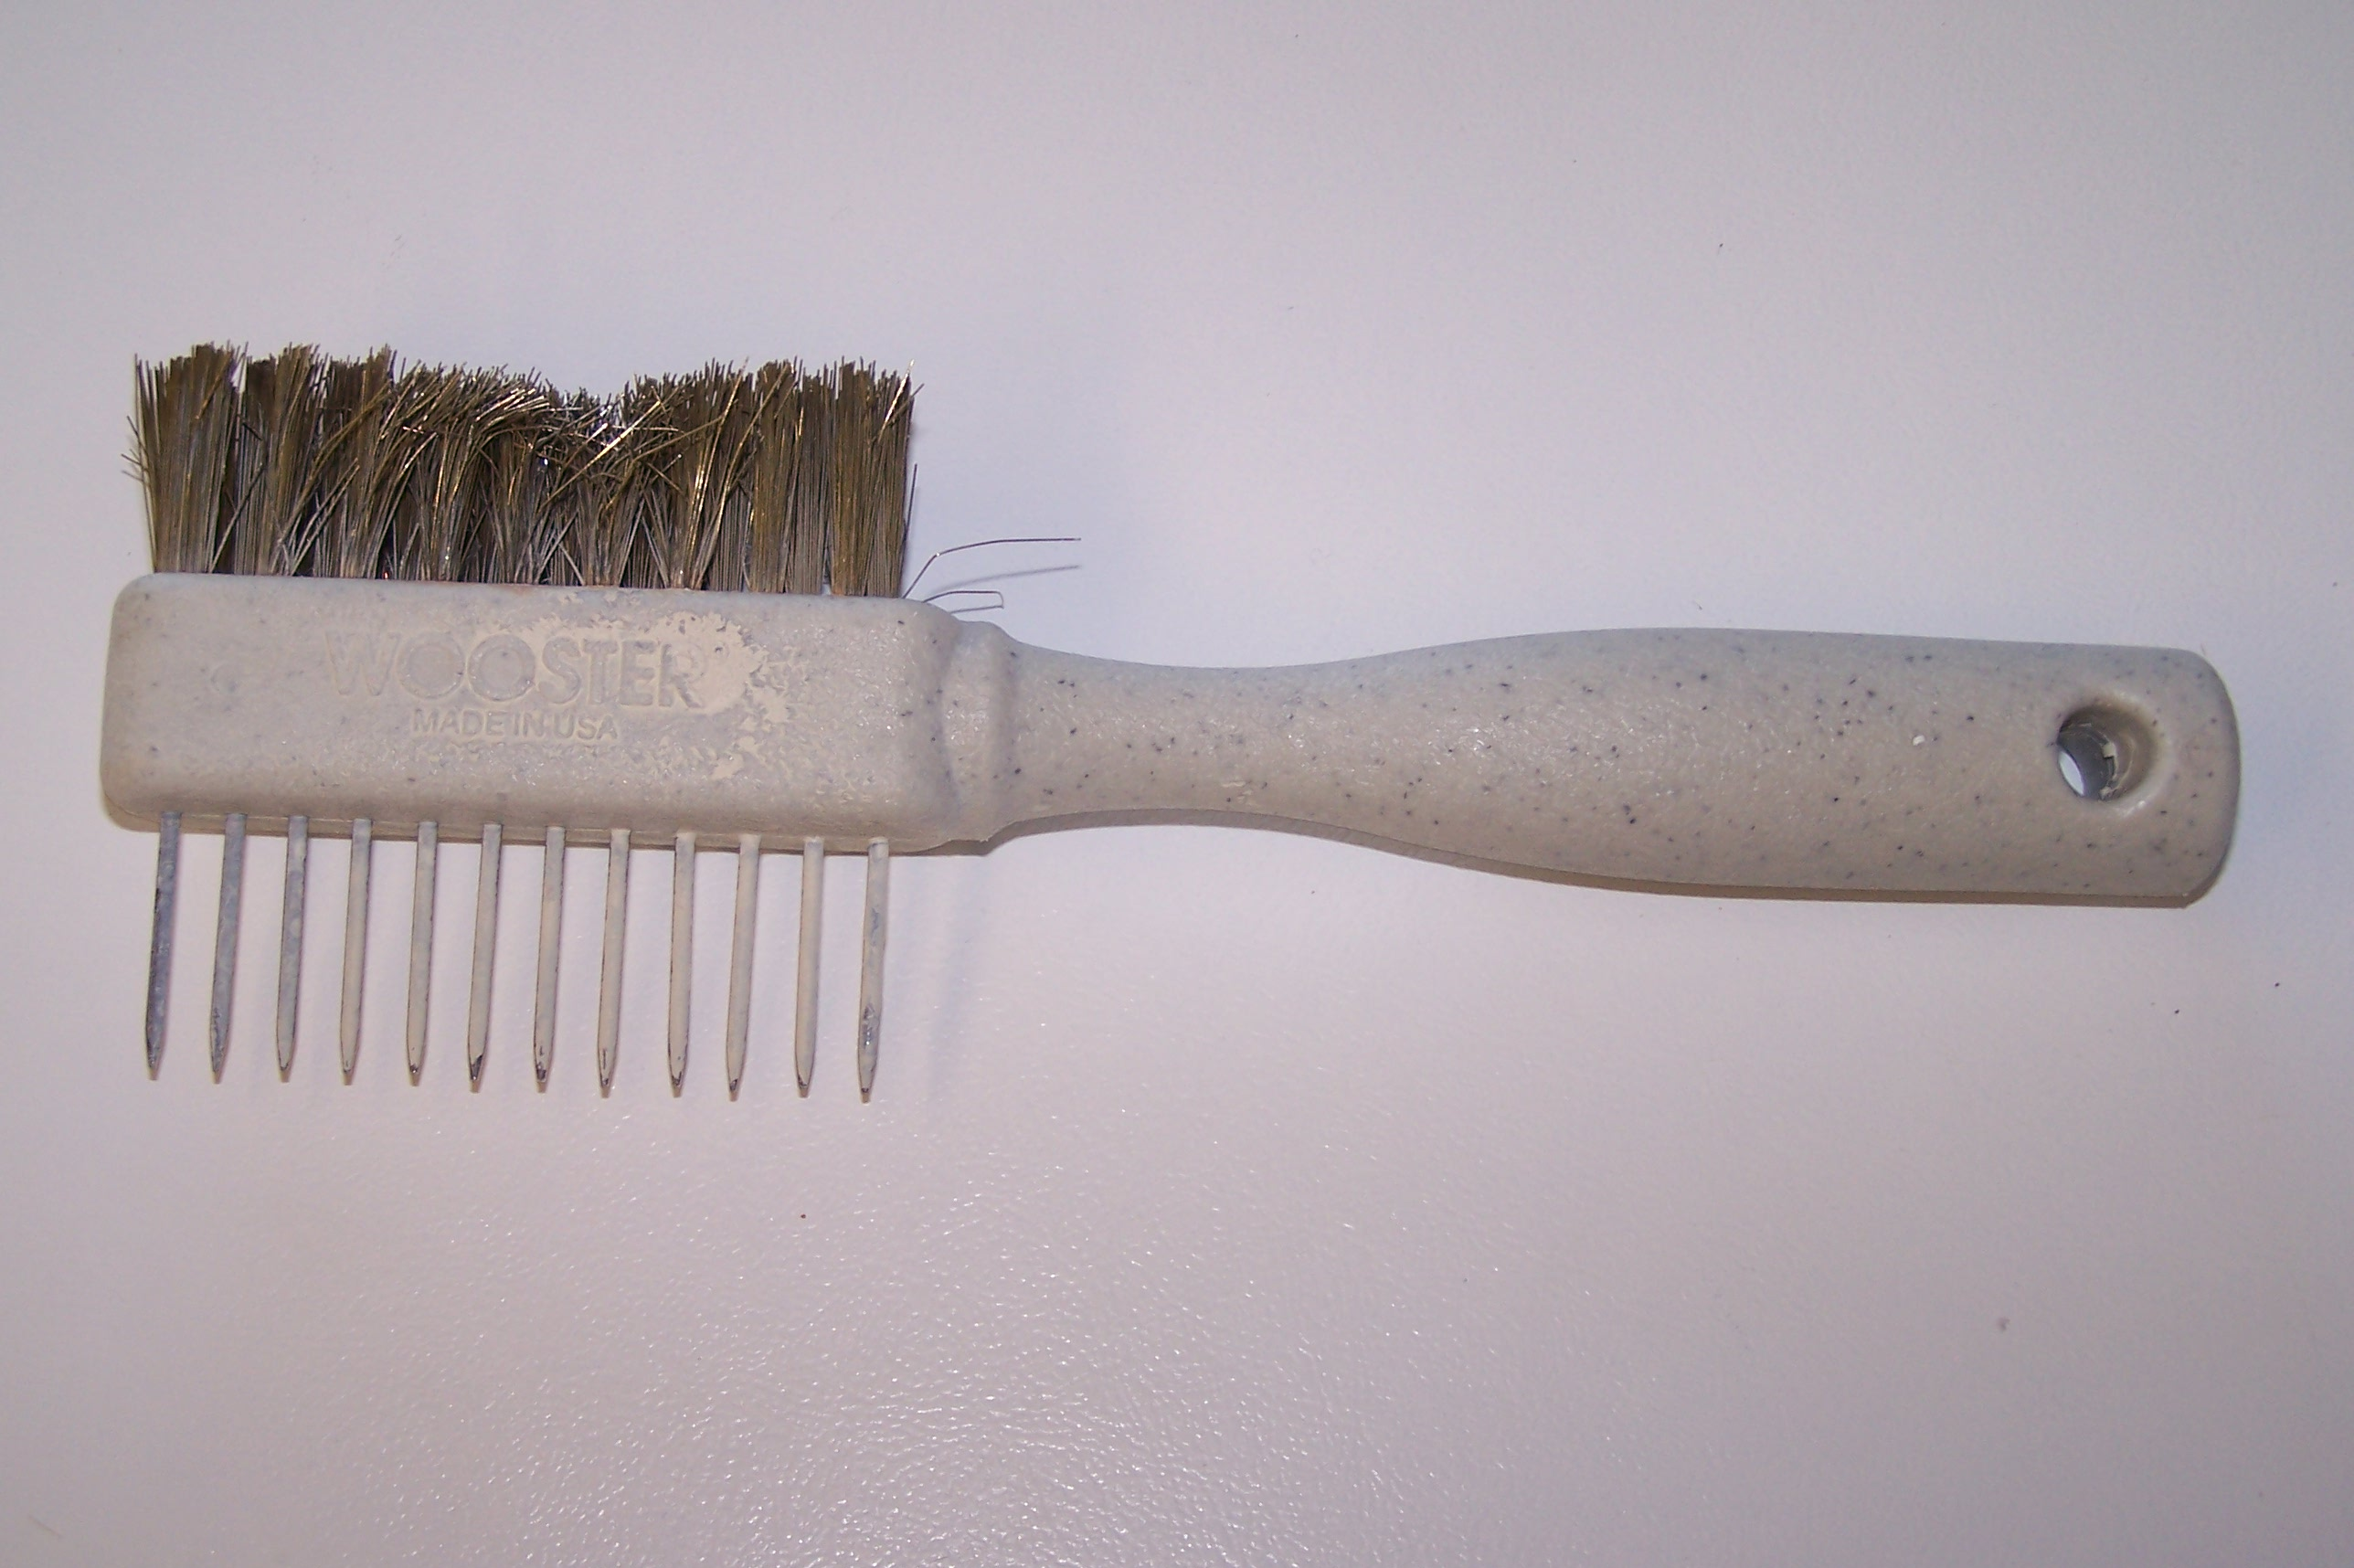 Painters Comb, Tool, Paint, Comb, Clean, HQ Photo